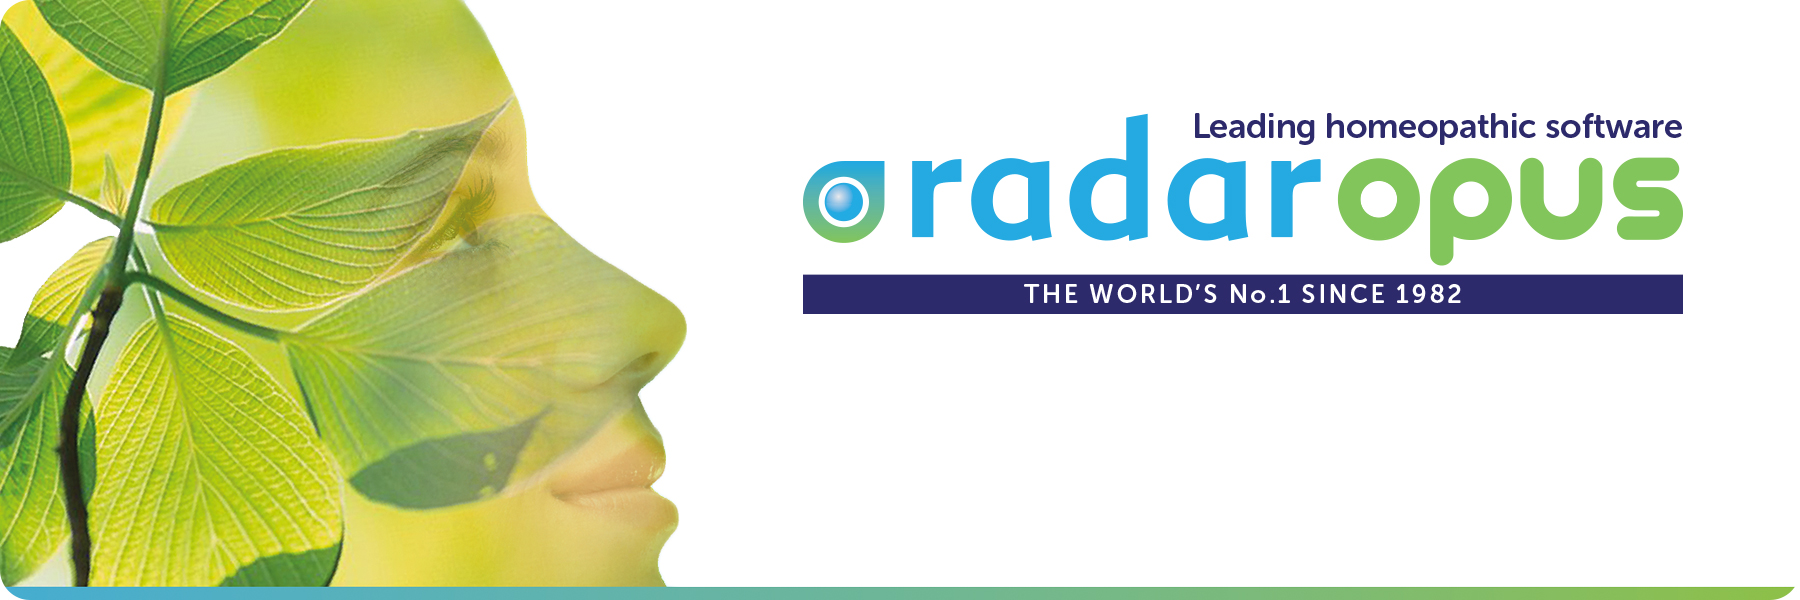 radar homeopathic software free download for windows 8